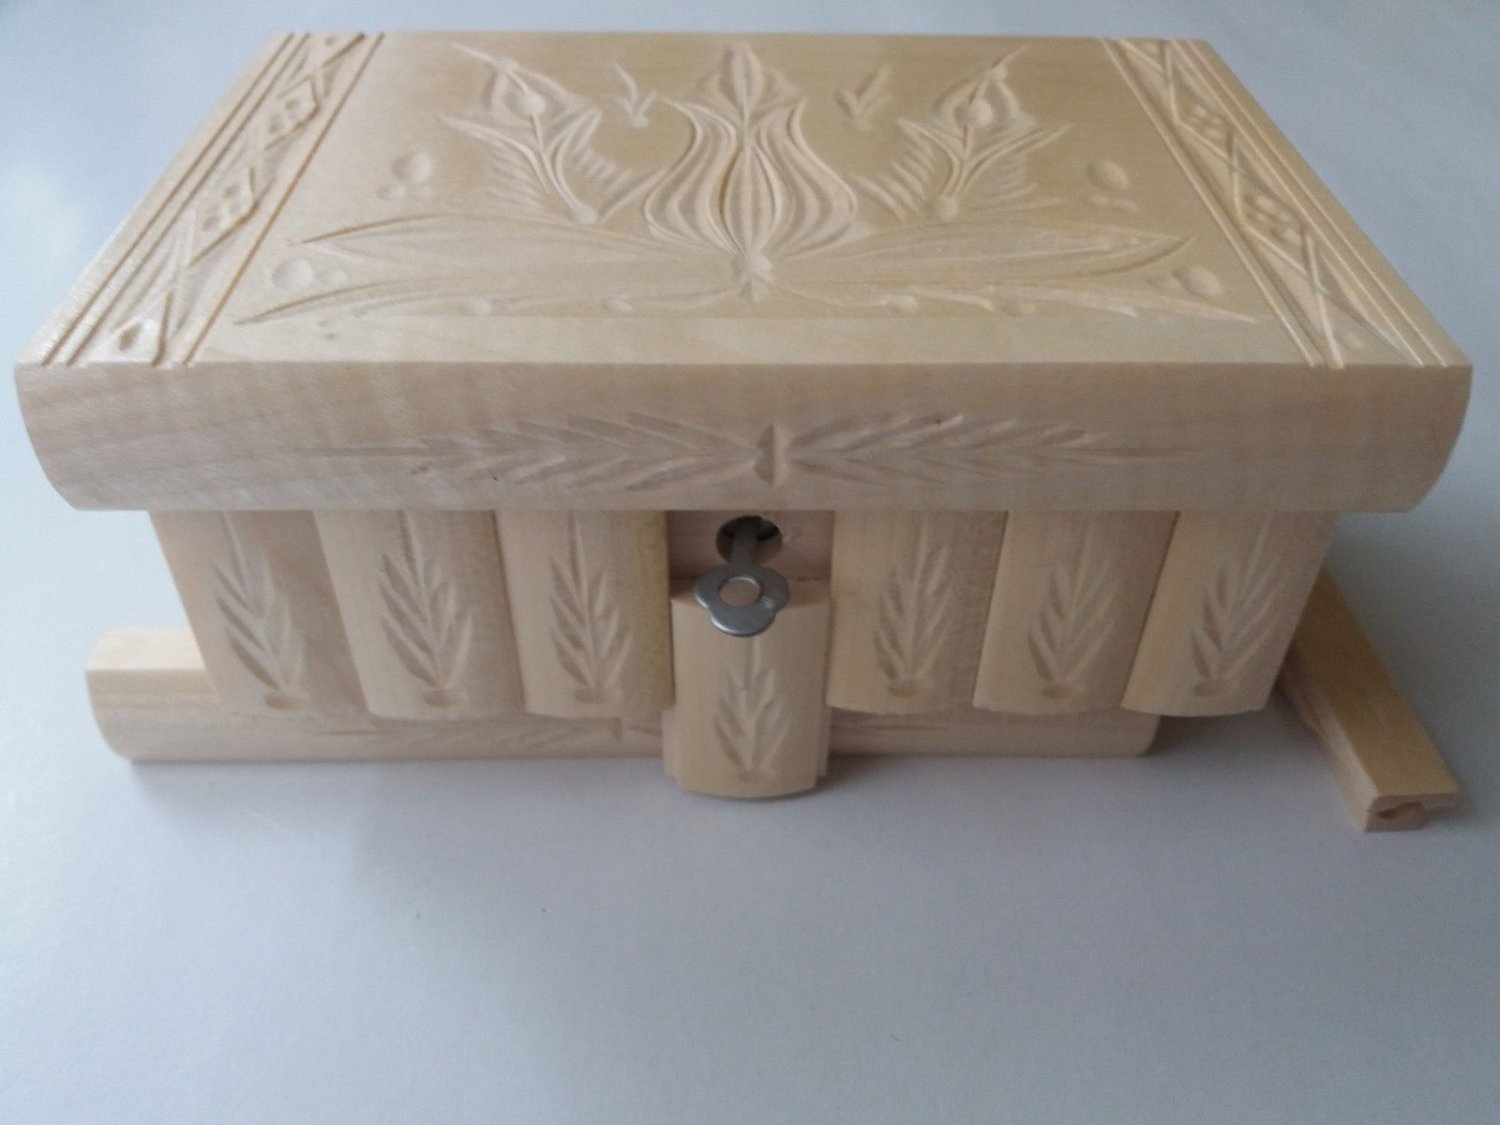 New natural laquered wood carved wizard jewelry puzzle magic box brain teaser